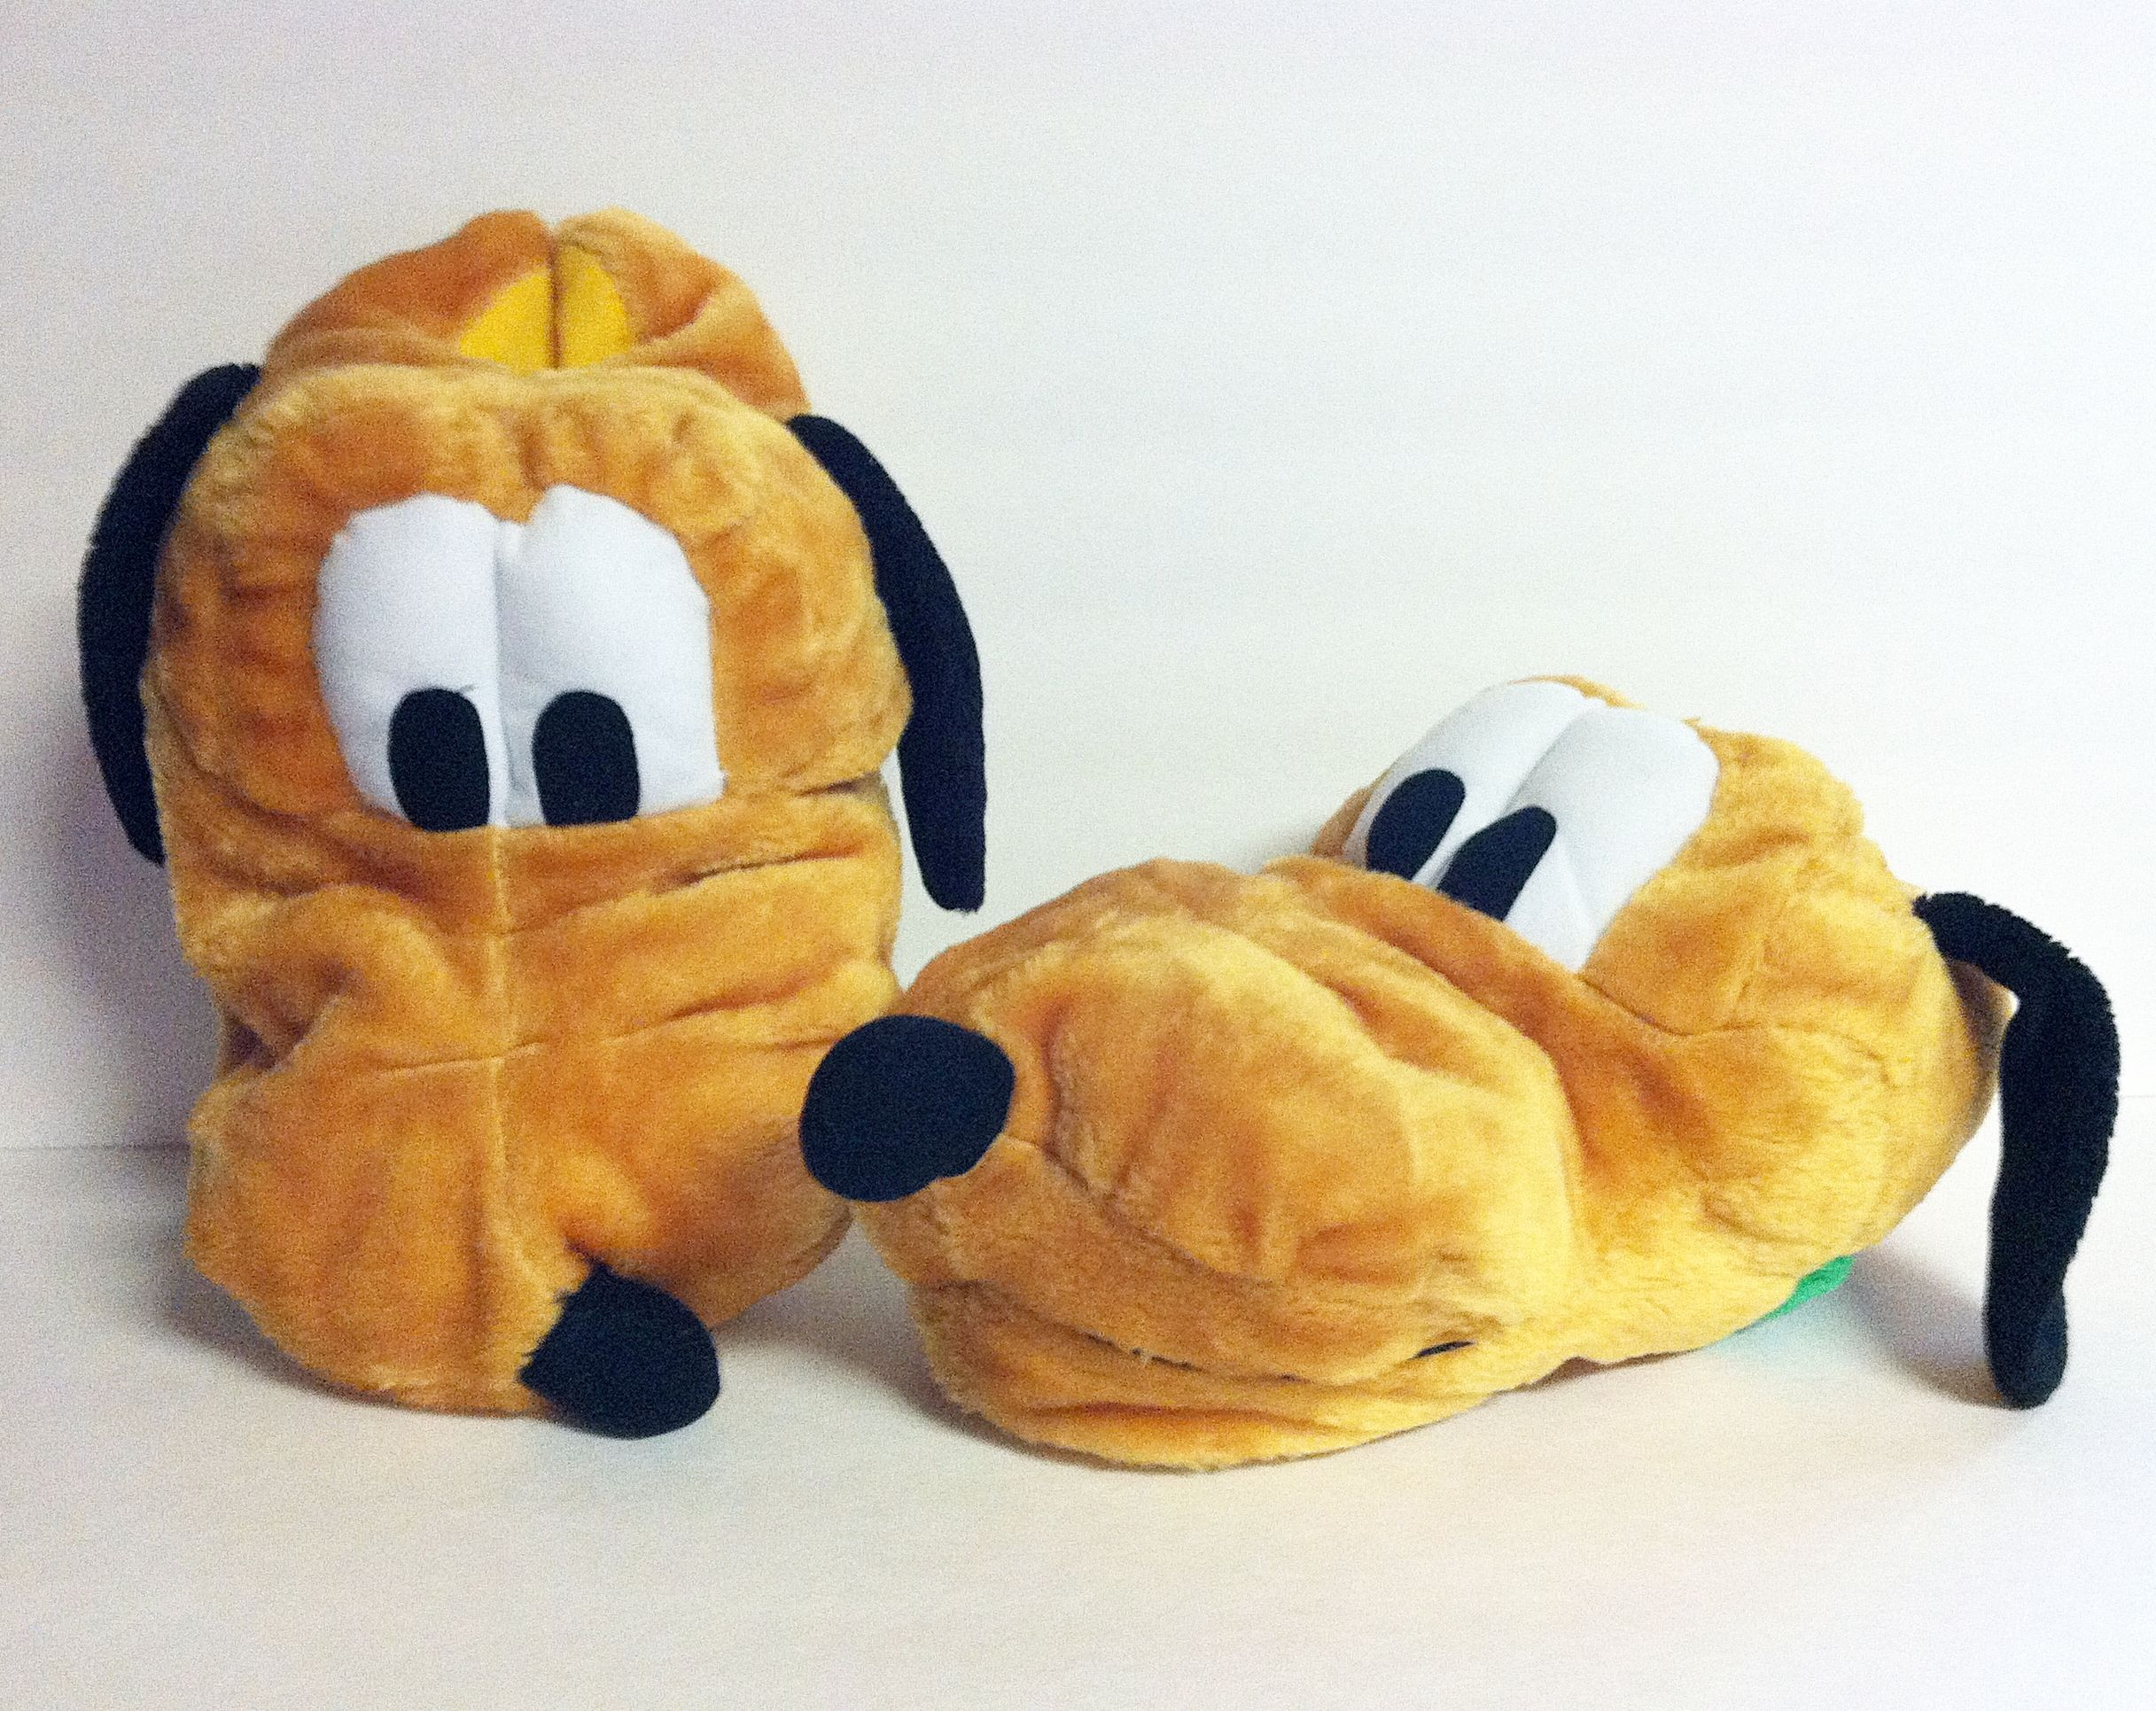 adc5693ad23 Disney Pluto Adult Plush Slippers House Shoes Scuffs Size 9-10  29.99